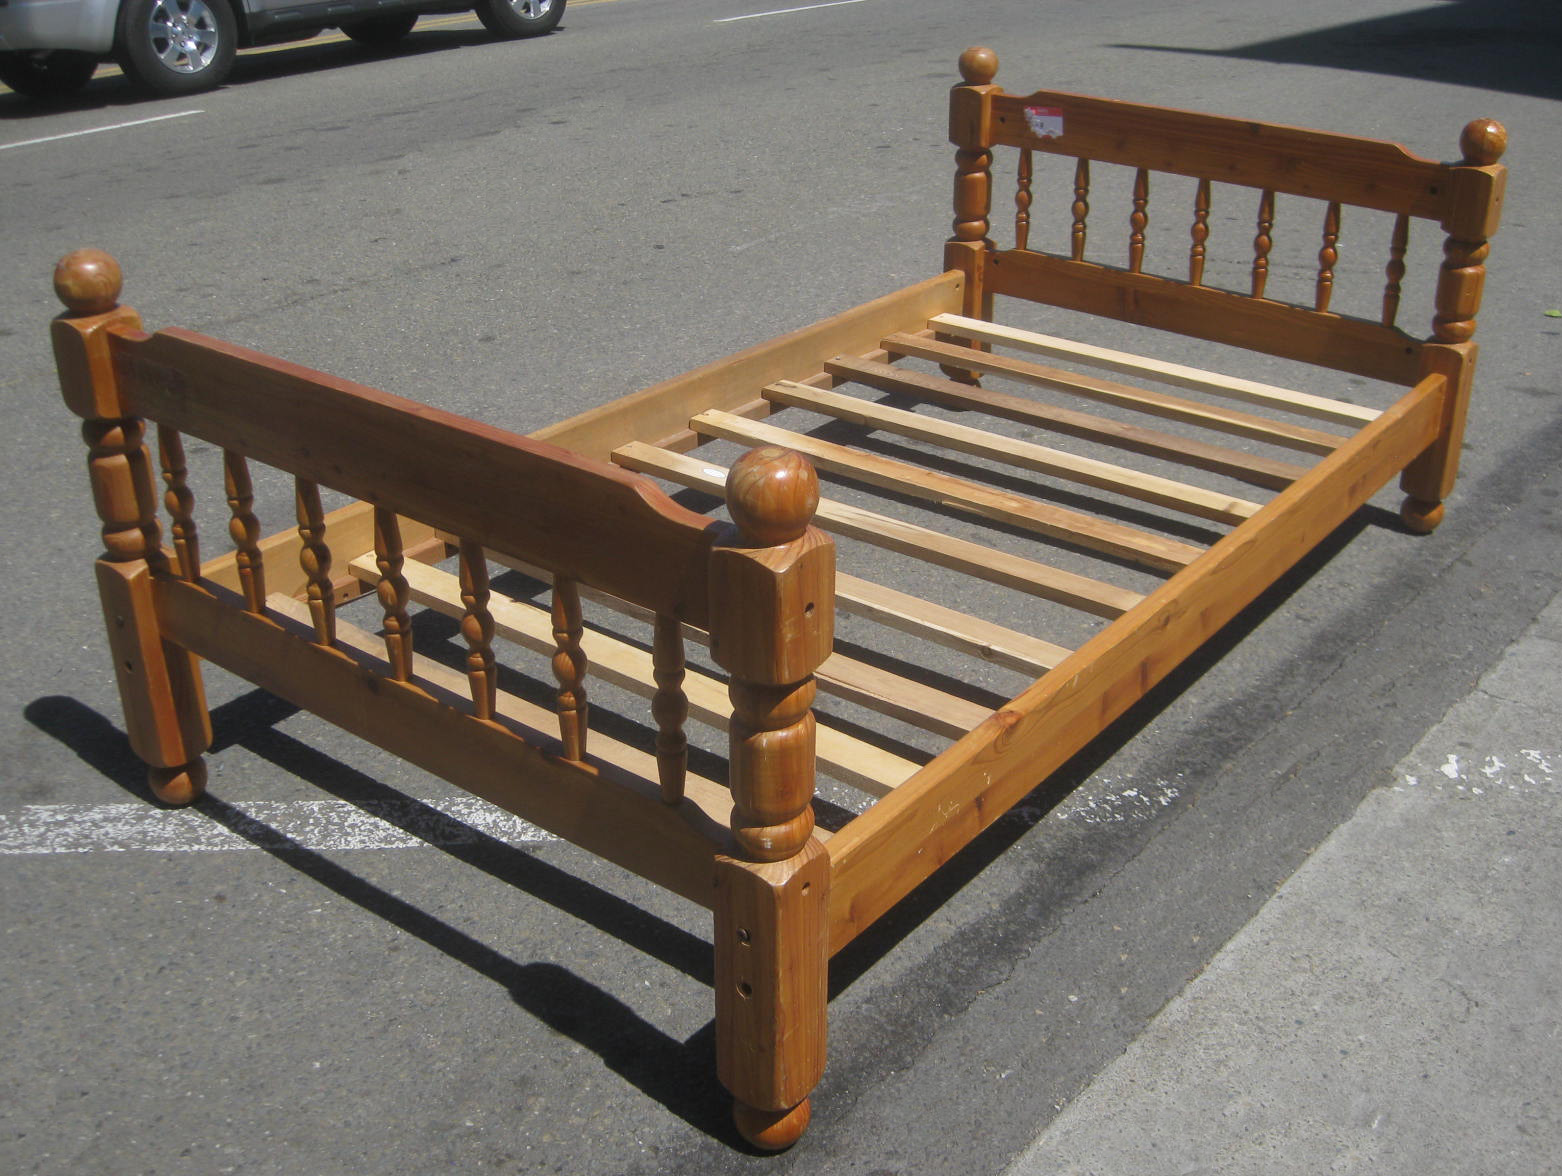 Uhuru furniture collectibles sold twin bed frame 35 for Twin mattress and frame